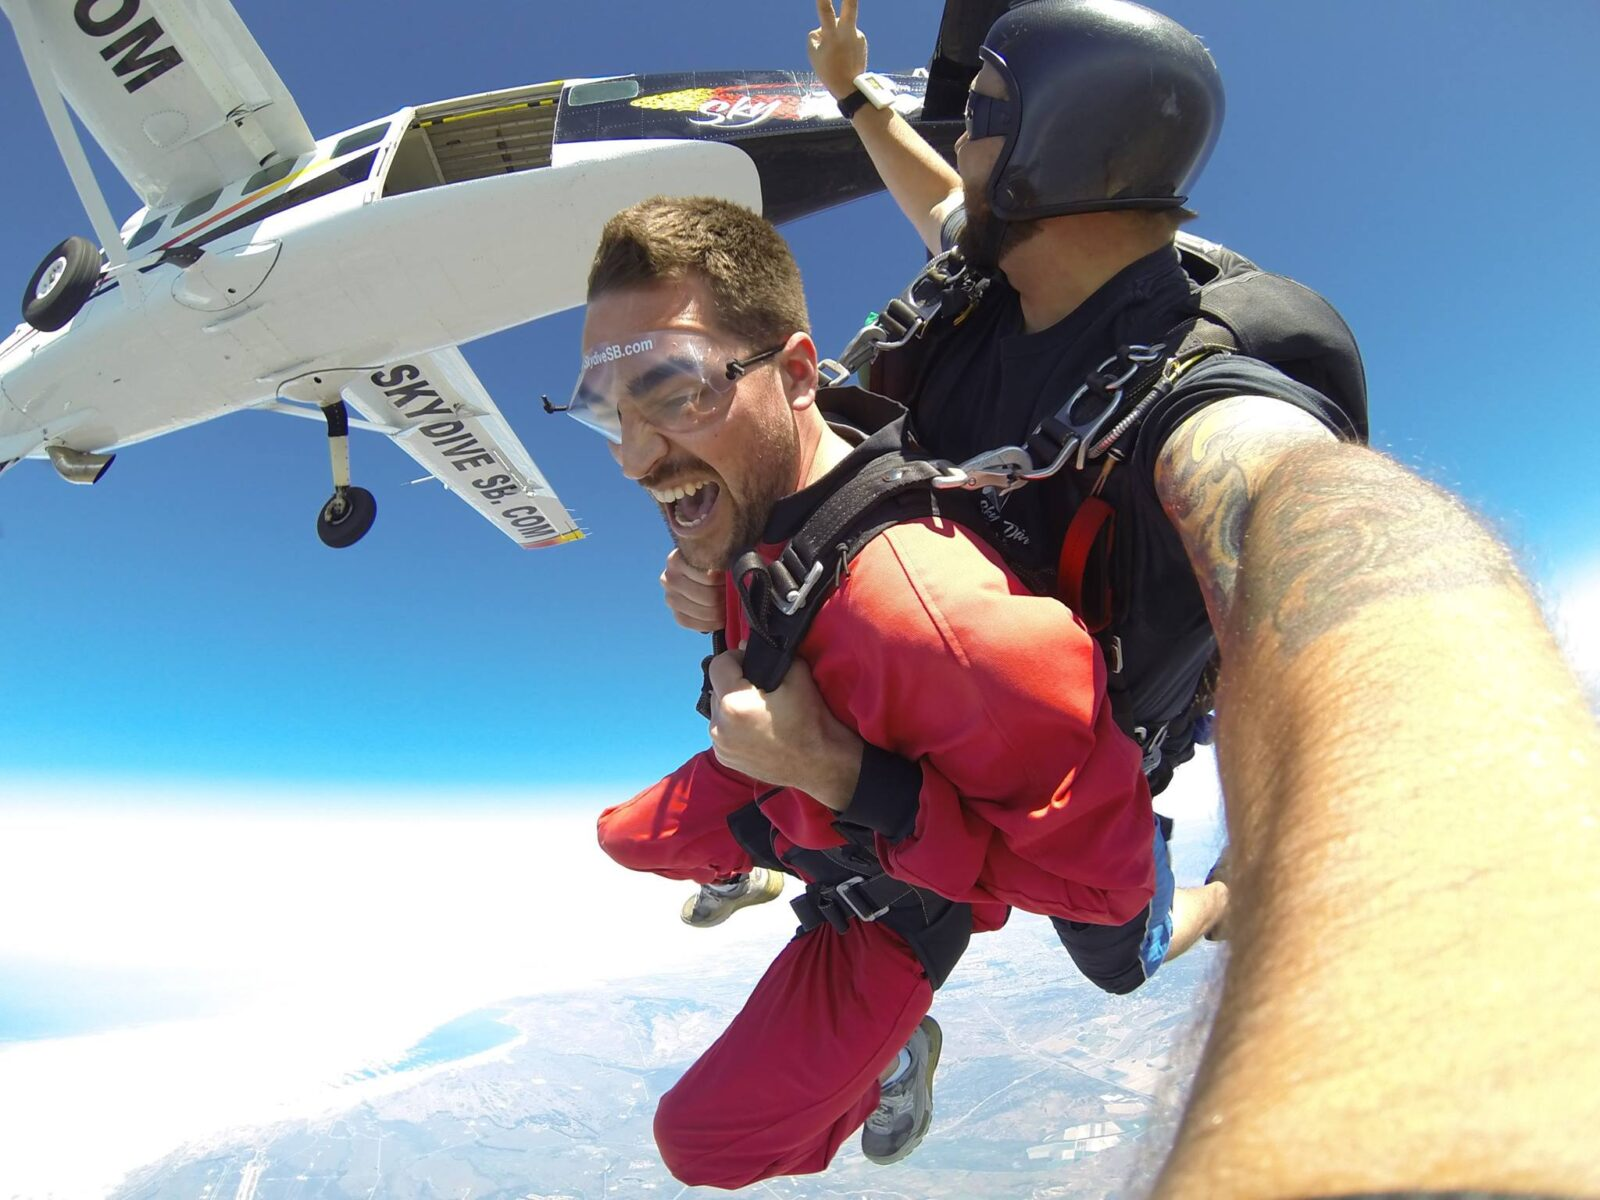 This Image Is A Photo Of A Holiday Tandem Skydive At Skydive Santa Barbara.